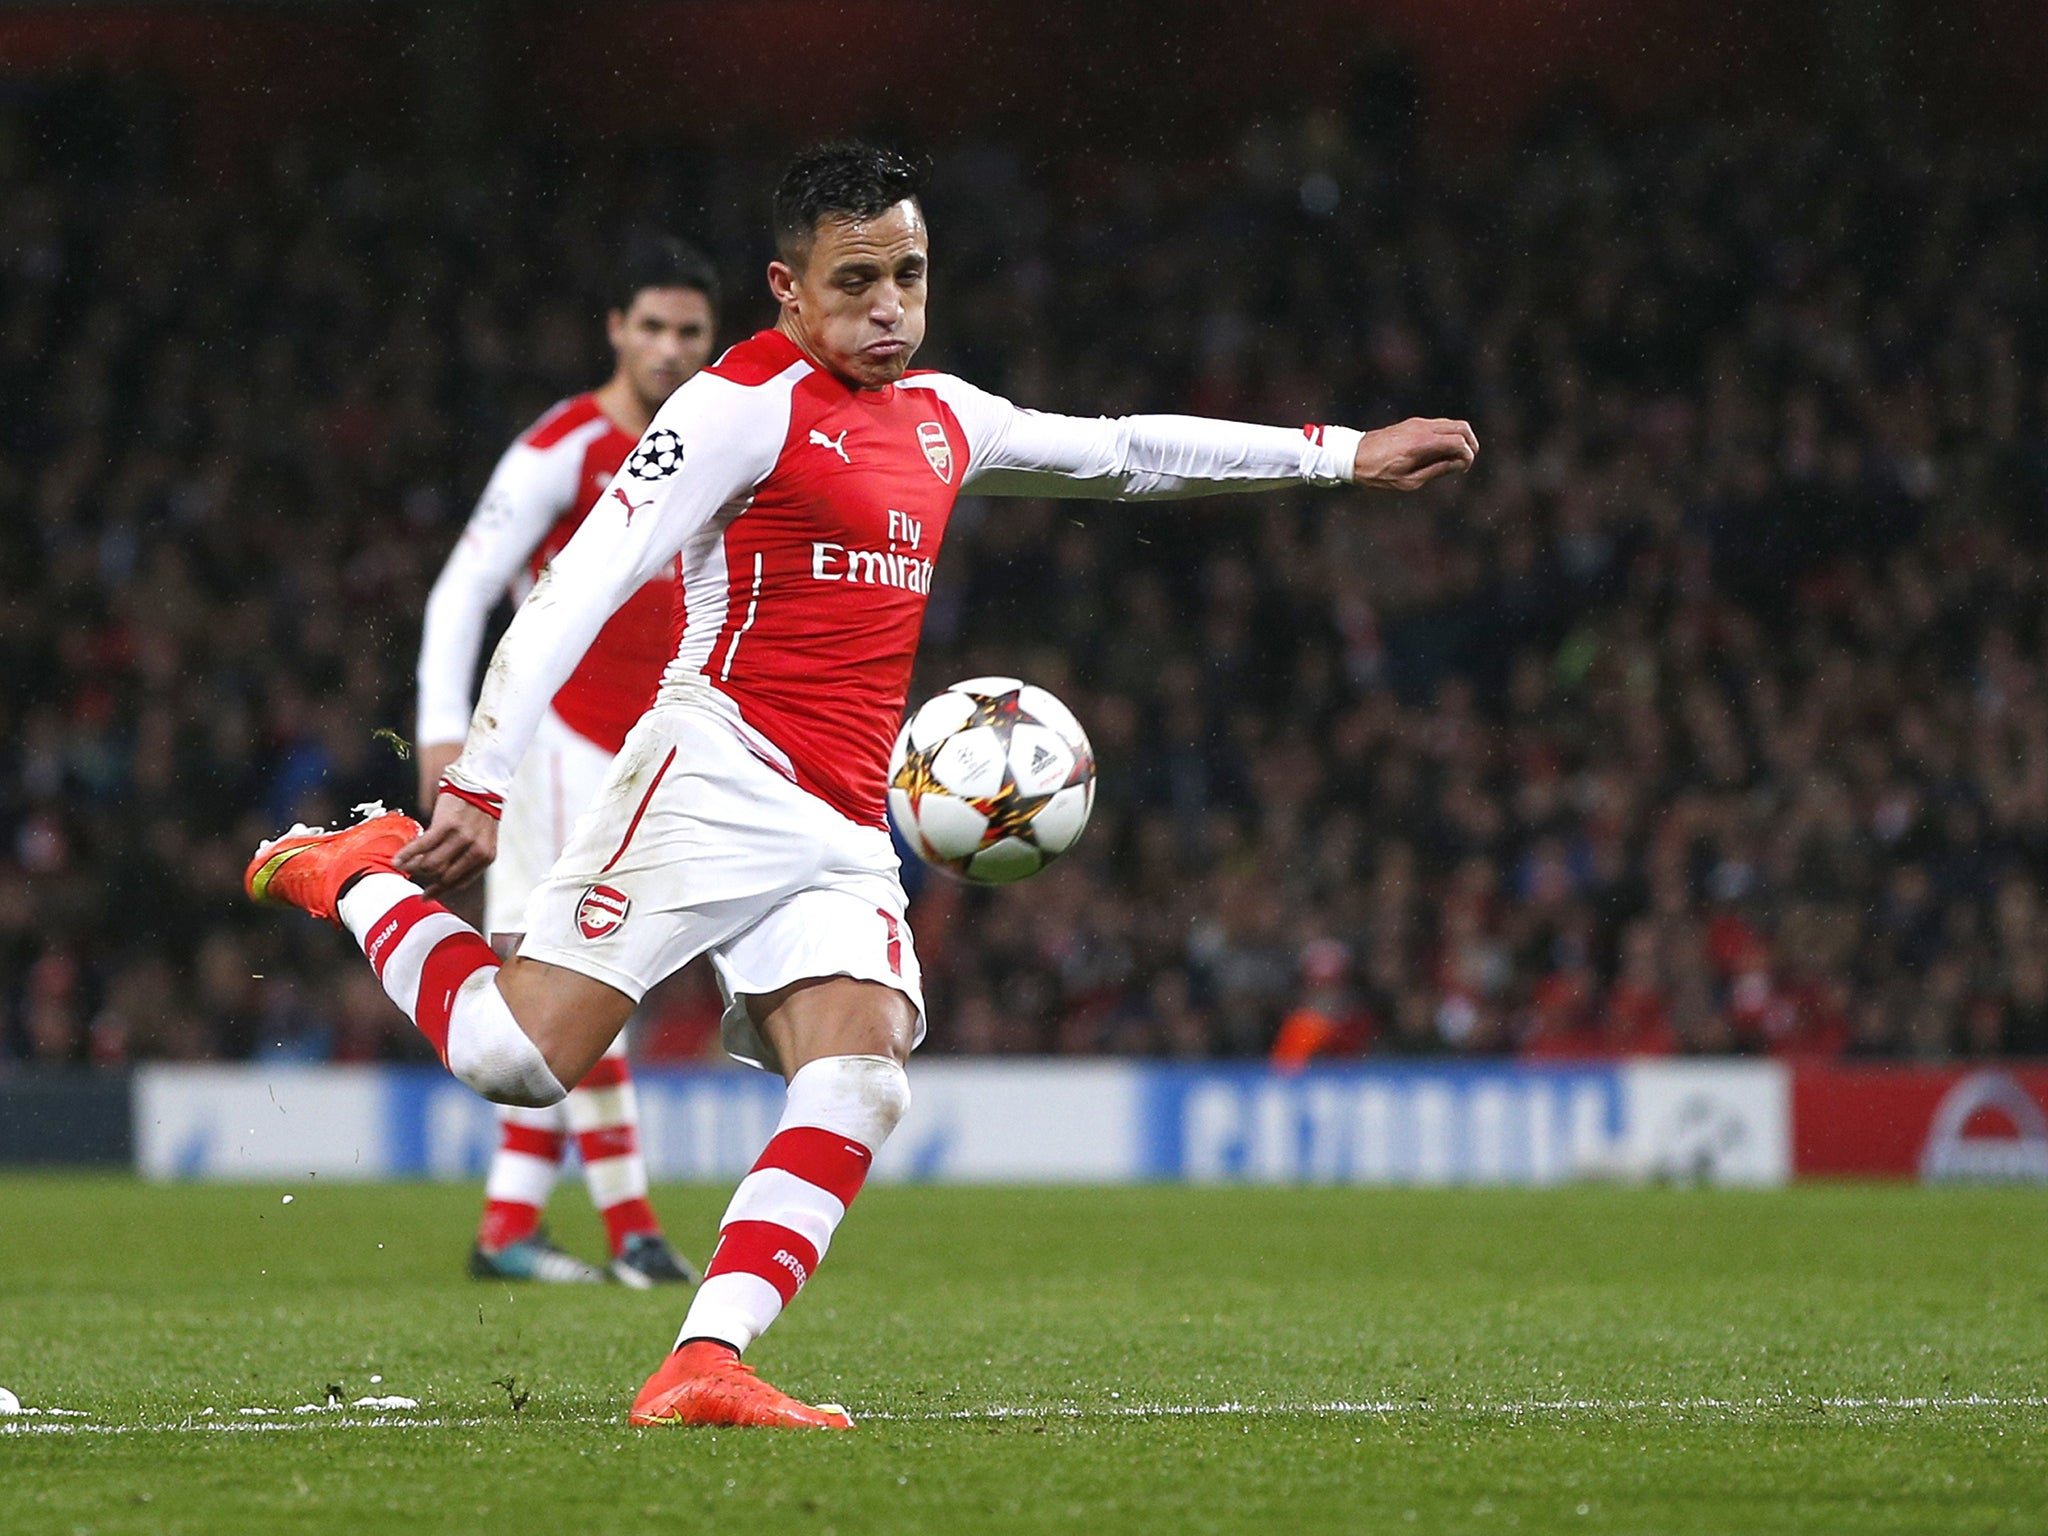 Alexis Sanchez GBP35m Arsenal Forward Hopes To Win Everything With The Gunners